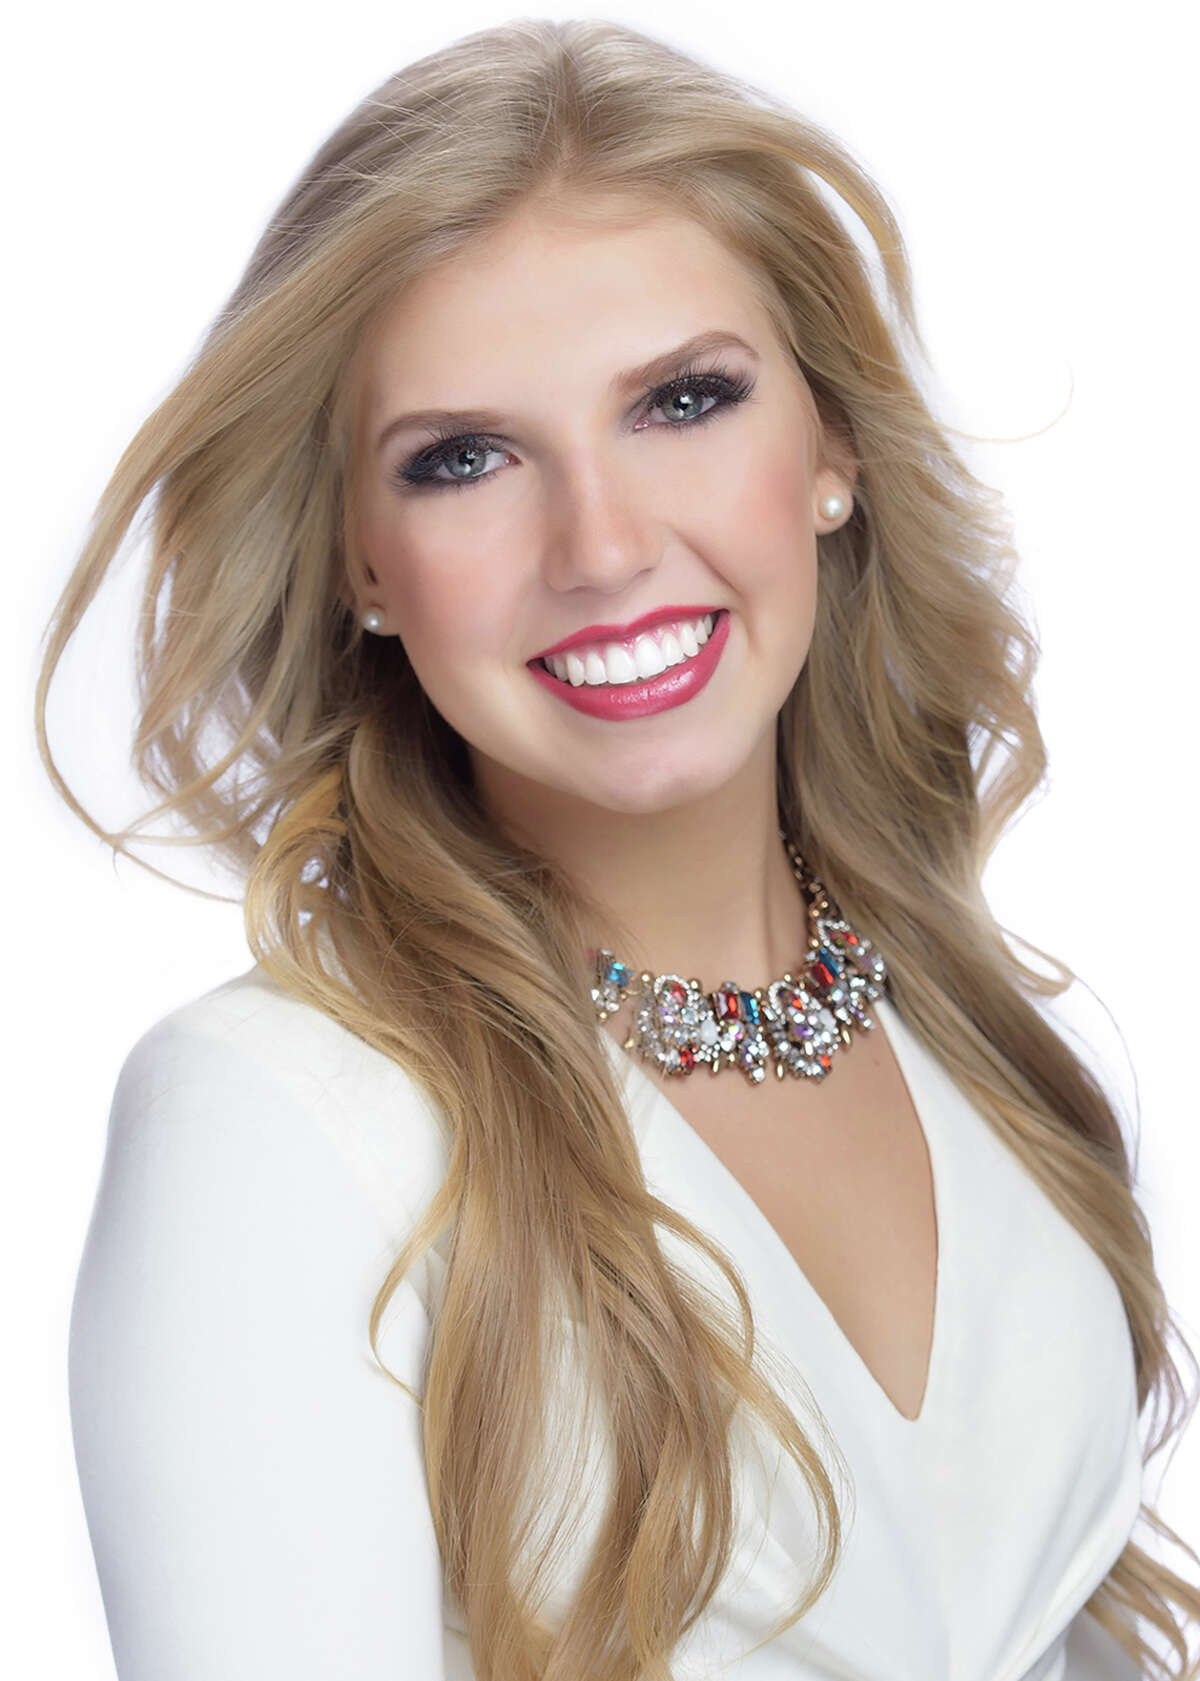 Competitor forMiss Teen Texas USAKinsley Cantrell - Tomball